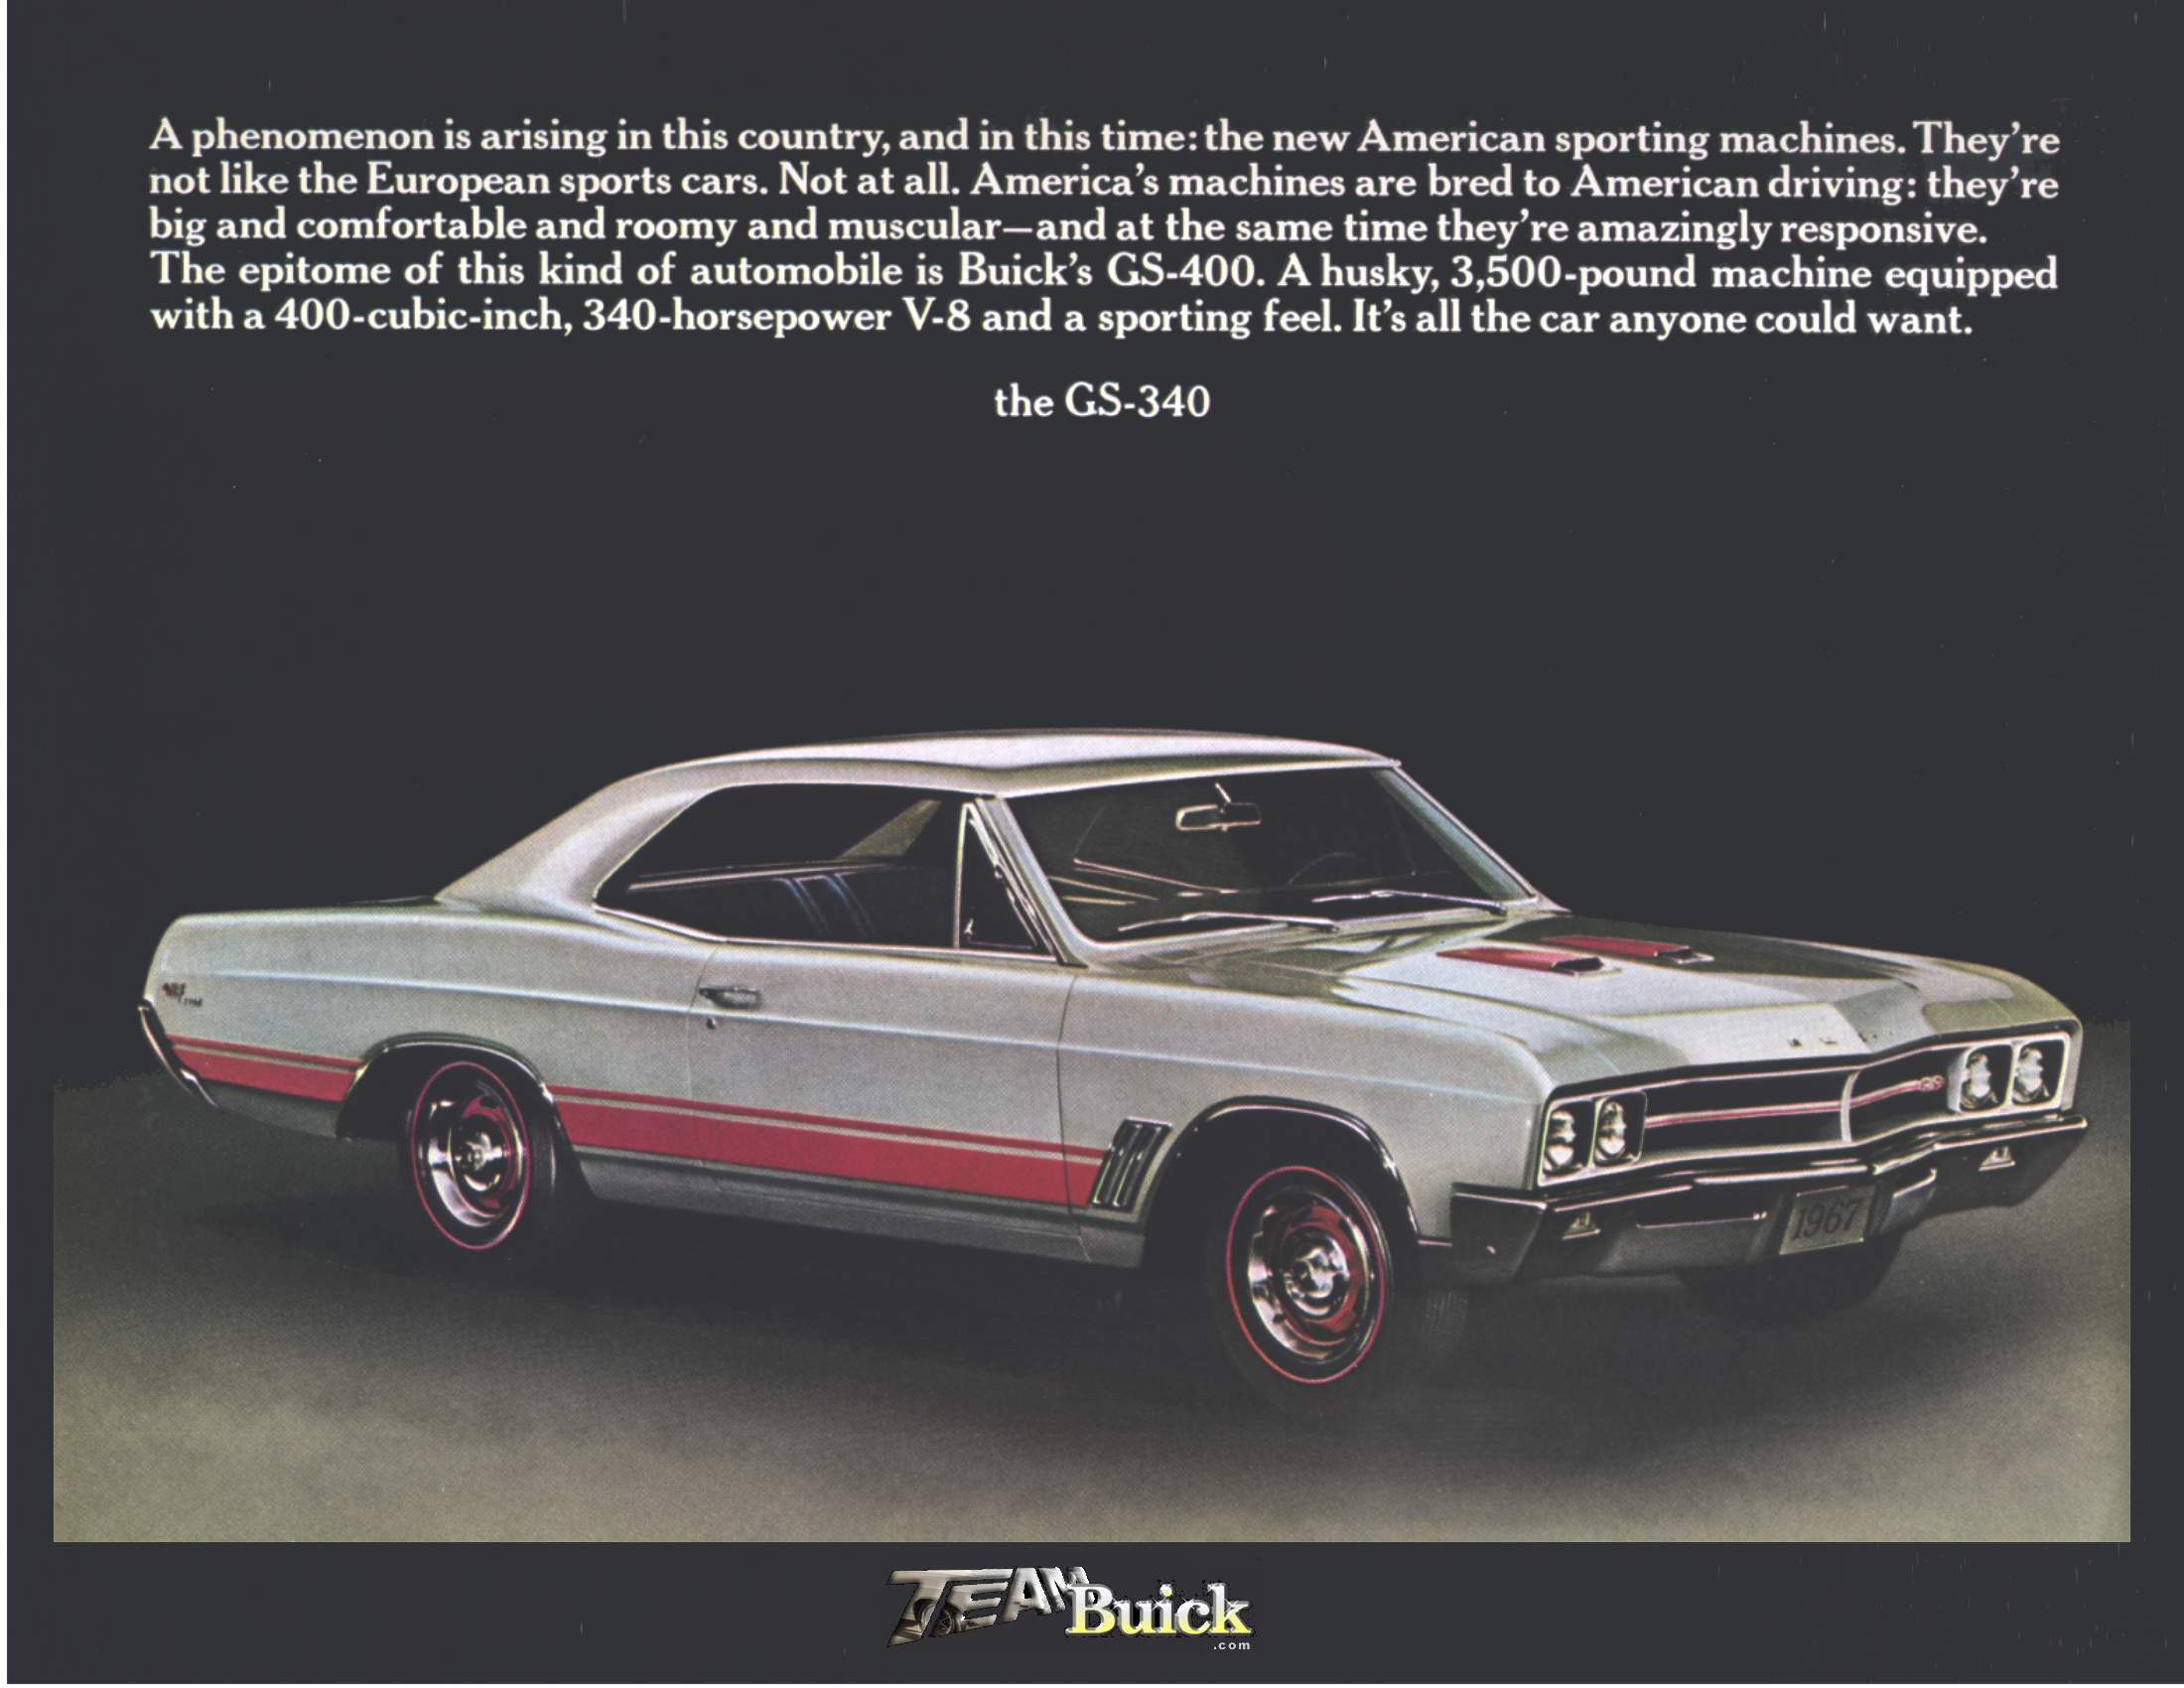 1967 Buick GS340